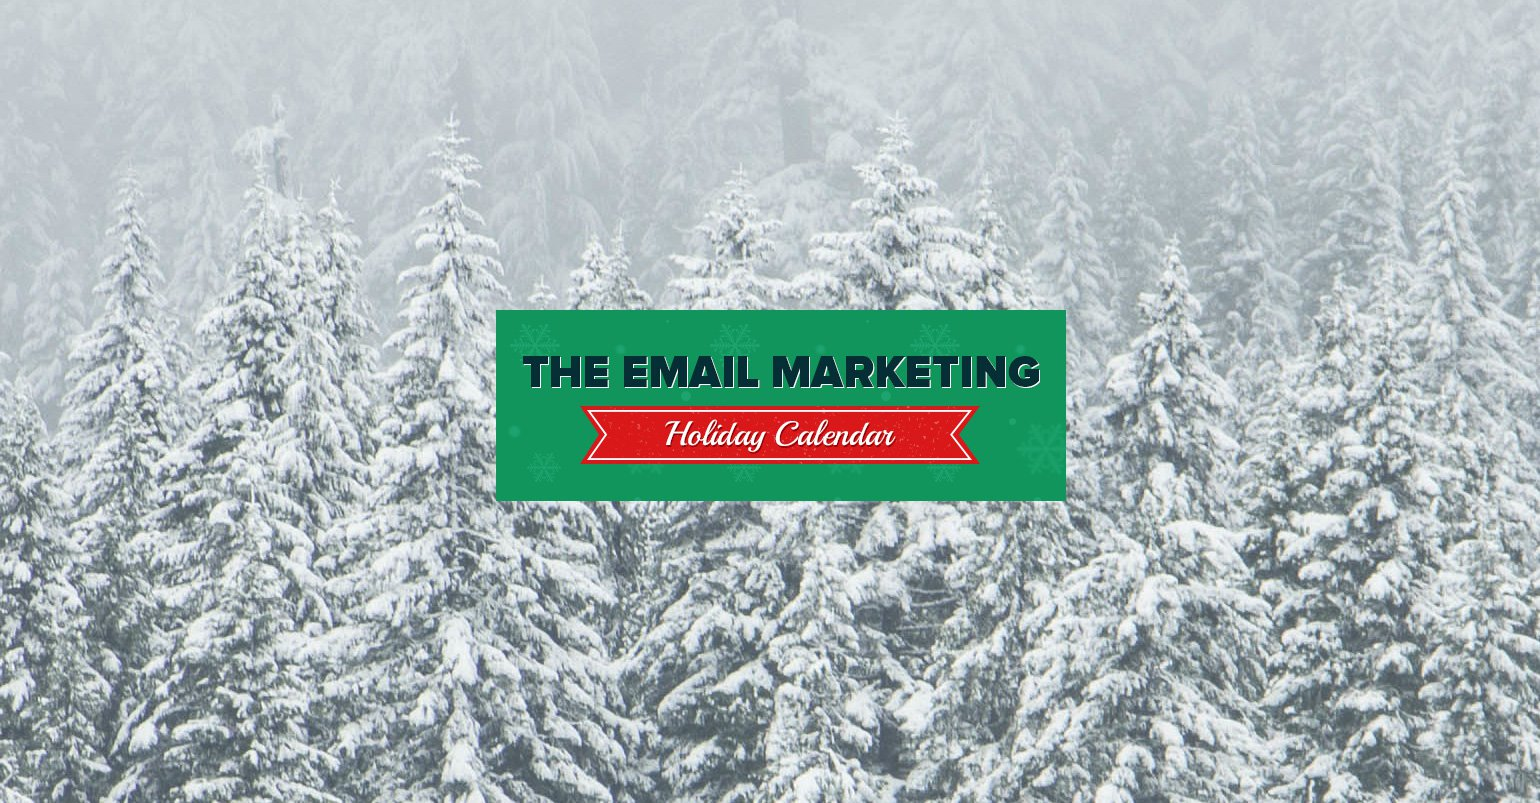 Email Marketing for Holidays [Infographic]